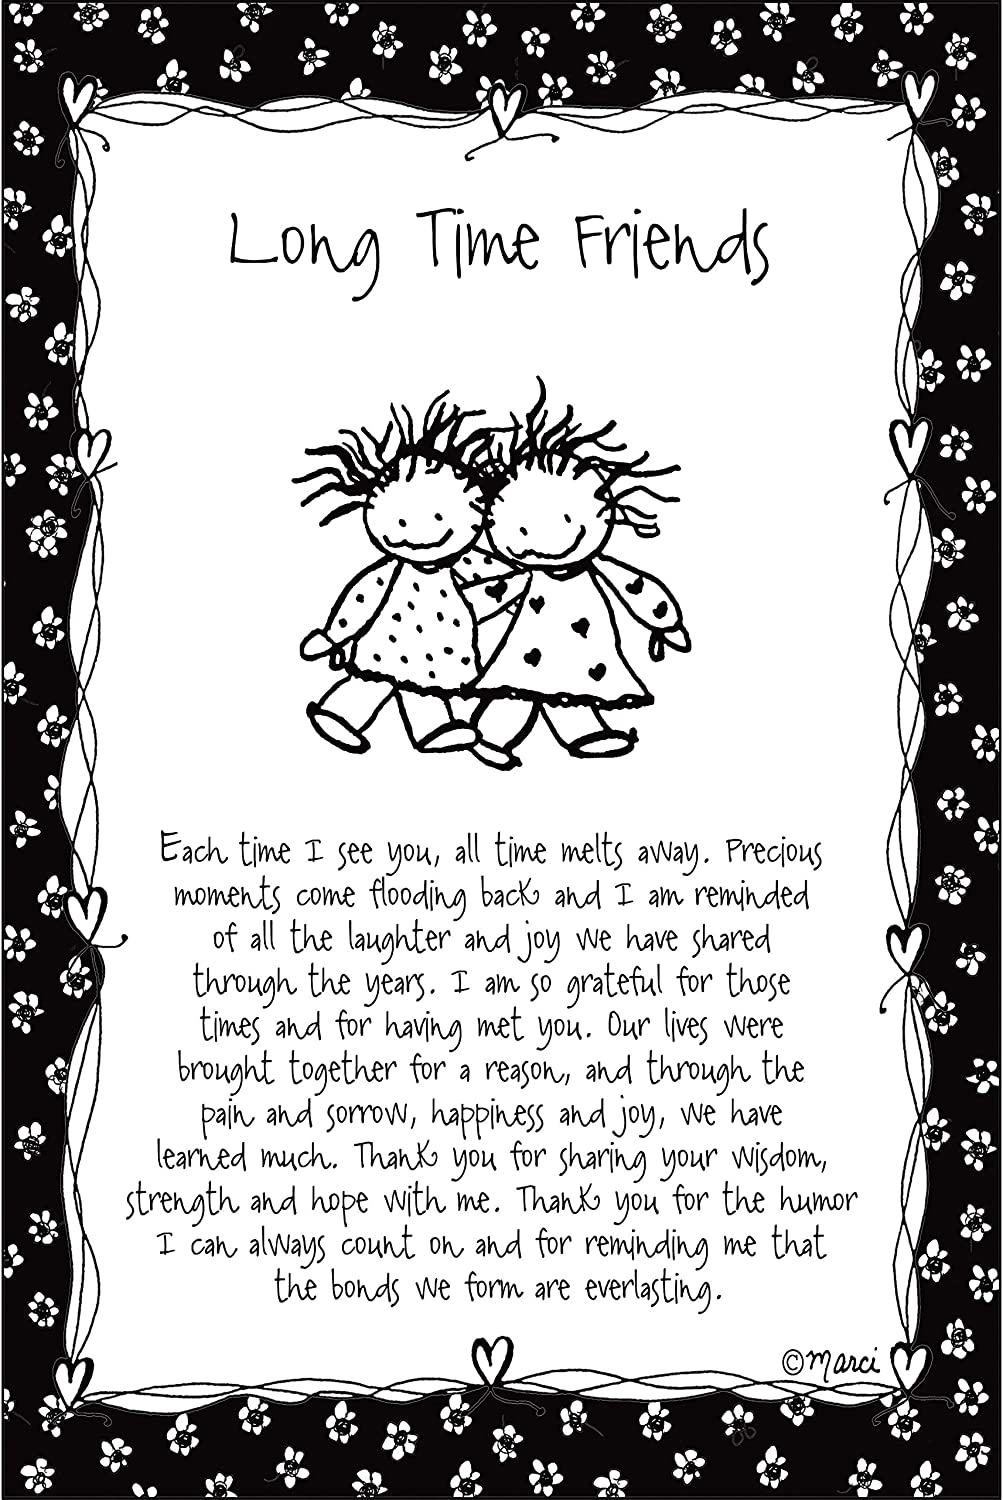 Long Time Friends Wood Plaque - Children of The Inner Light by Marci | Elegant Vertical Frame Wall Art & Tabletop Decoration | Easel & Hanging Hook | Measures 6 inches x 9 inches